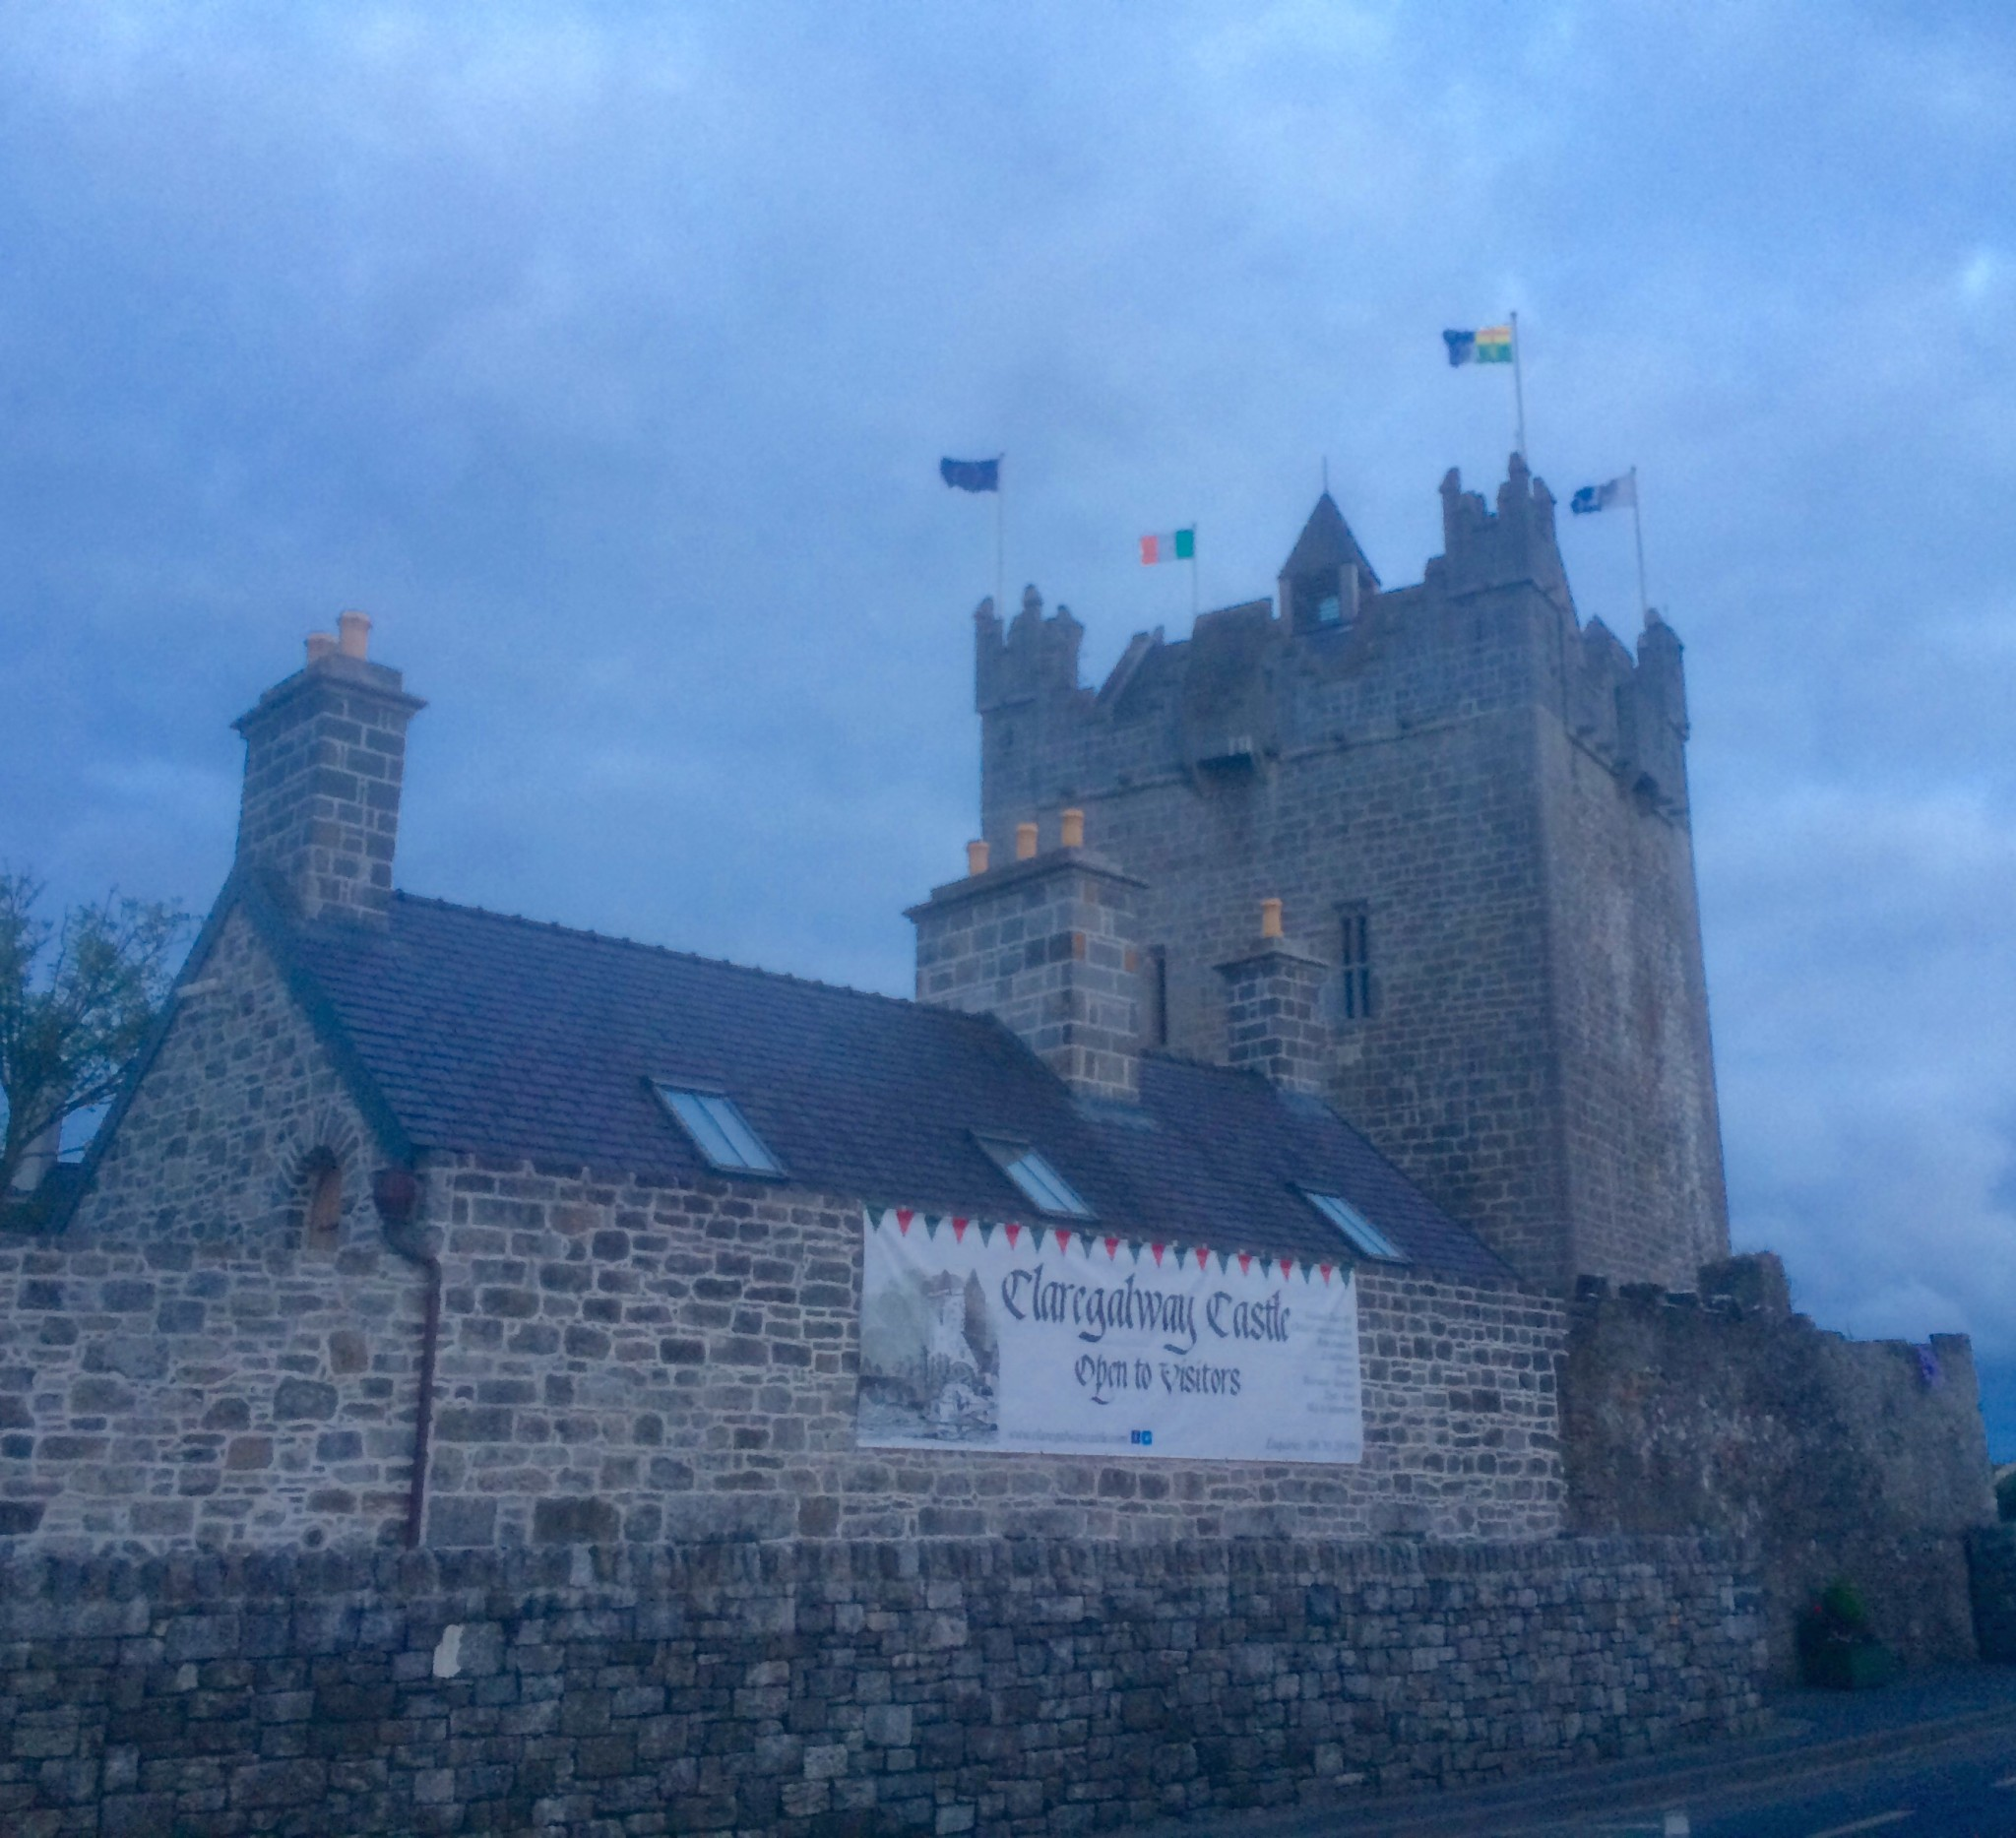 Claregalway Castle, the venue for the launch of 'Through the Lands of the Auteri and St. Jarlath'.